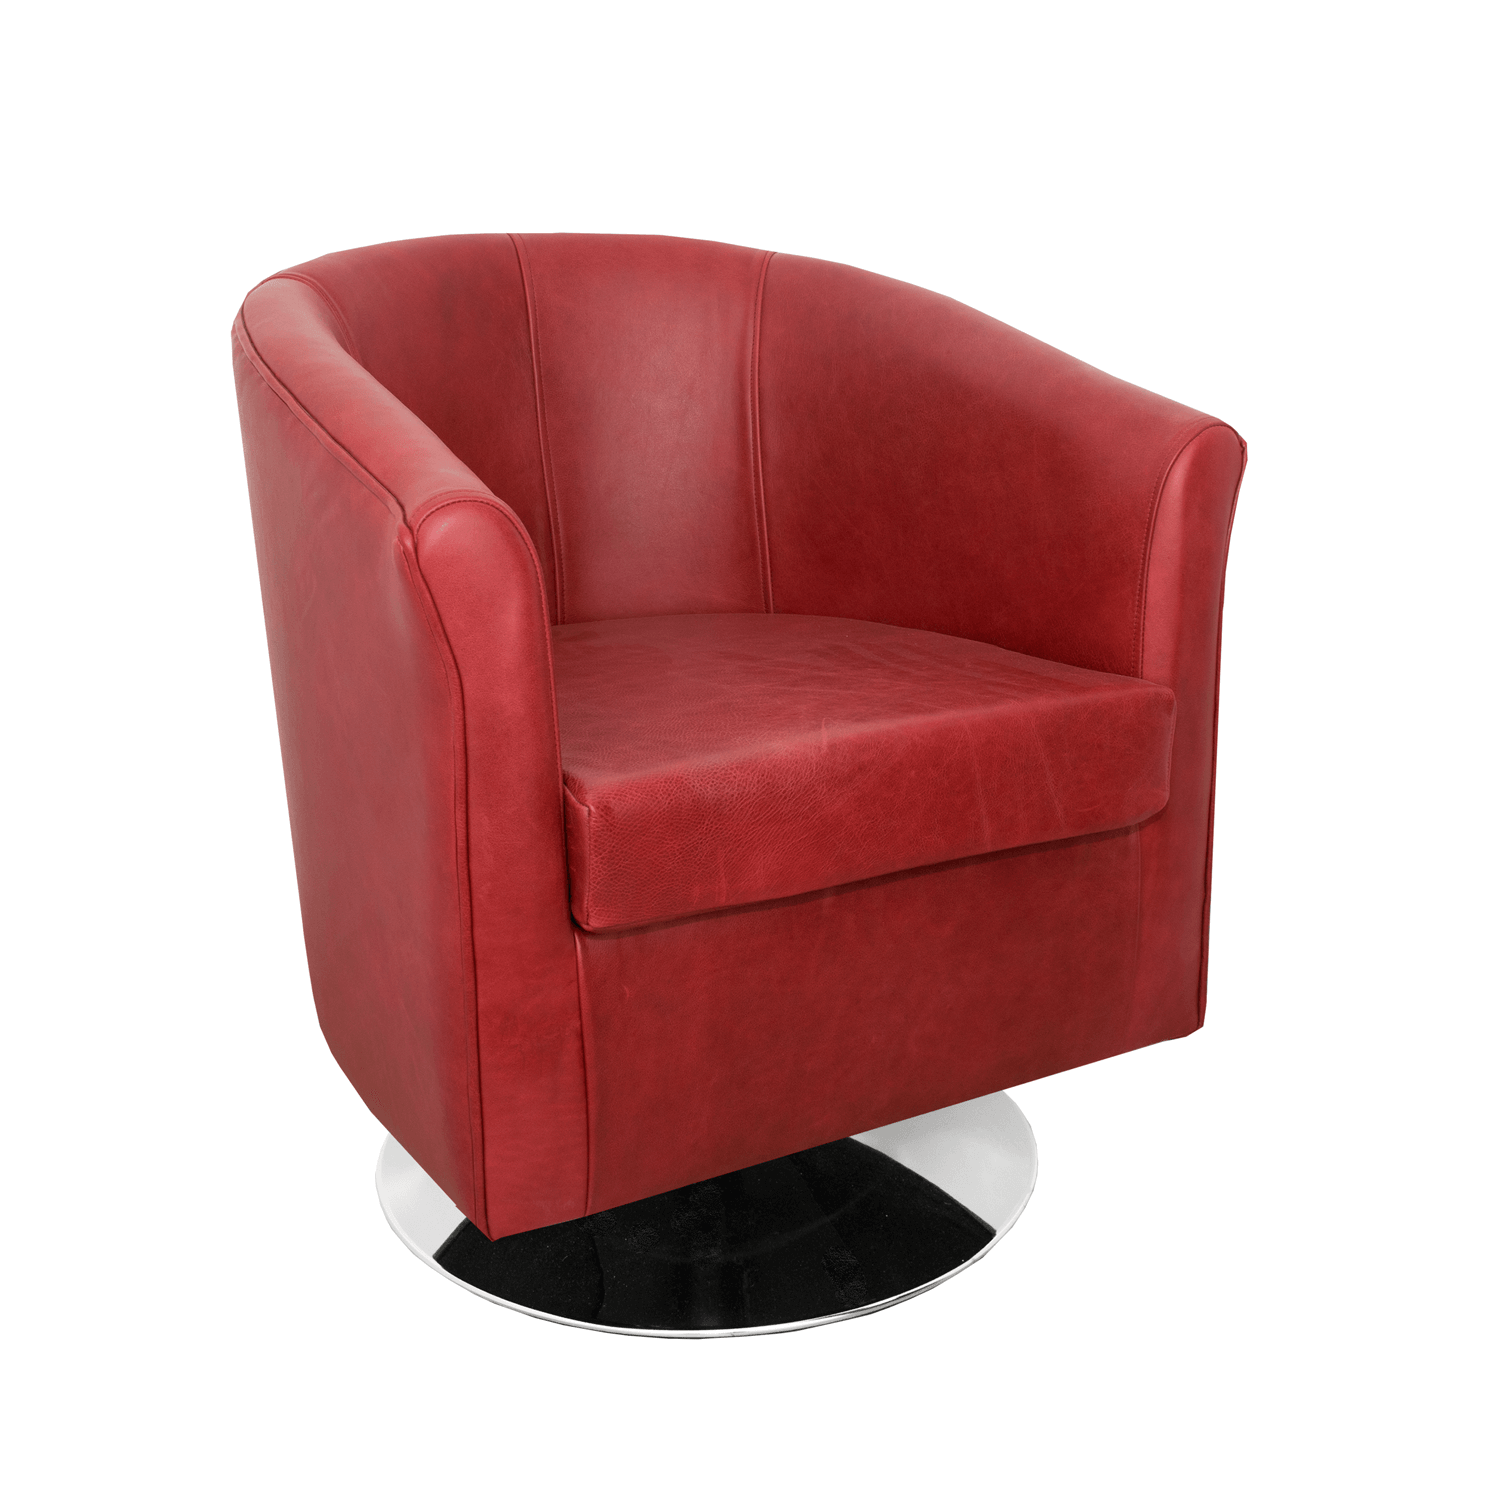 Super Tuscany Genuine Leather Swivel Tub Chair In Crib 5 Mustang Ibusinesslaw Wood Chair Design Ideas Ibusinesslaworg